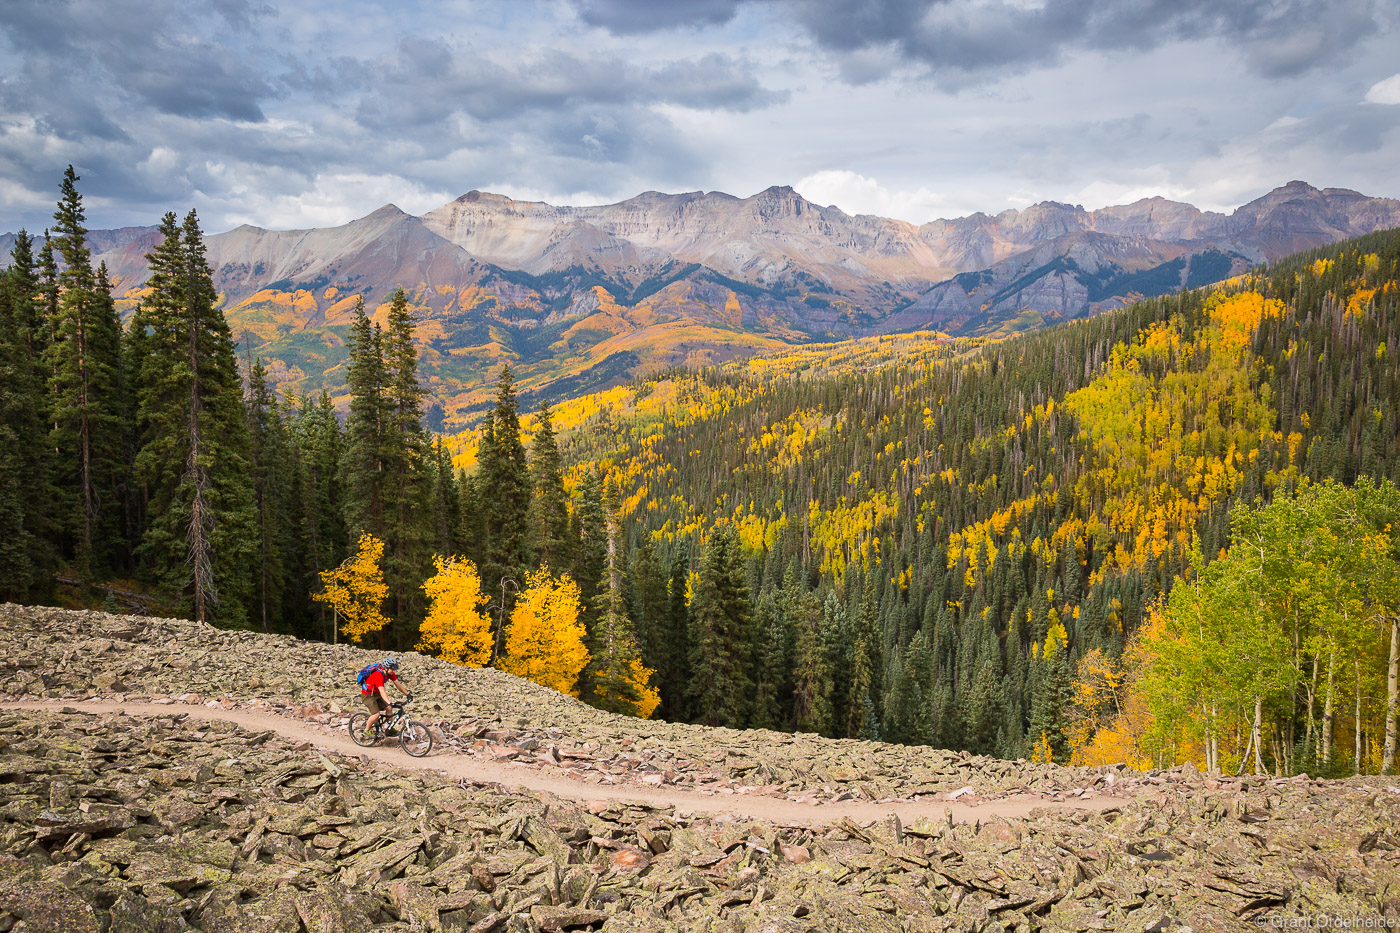 telluride, biking, colorado, usa, mountain, biker, trail, high, town, peak, fall, color, season, photo